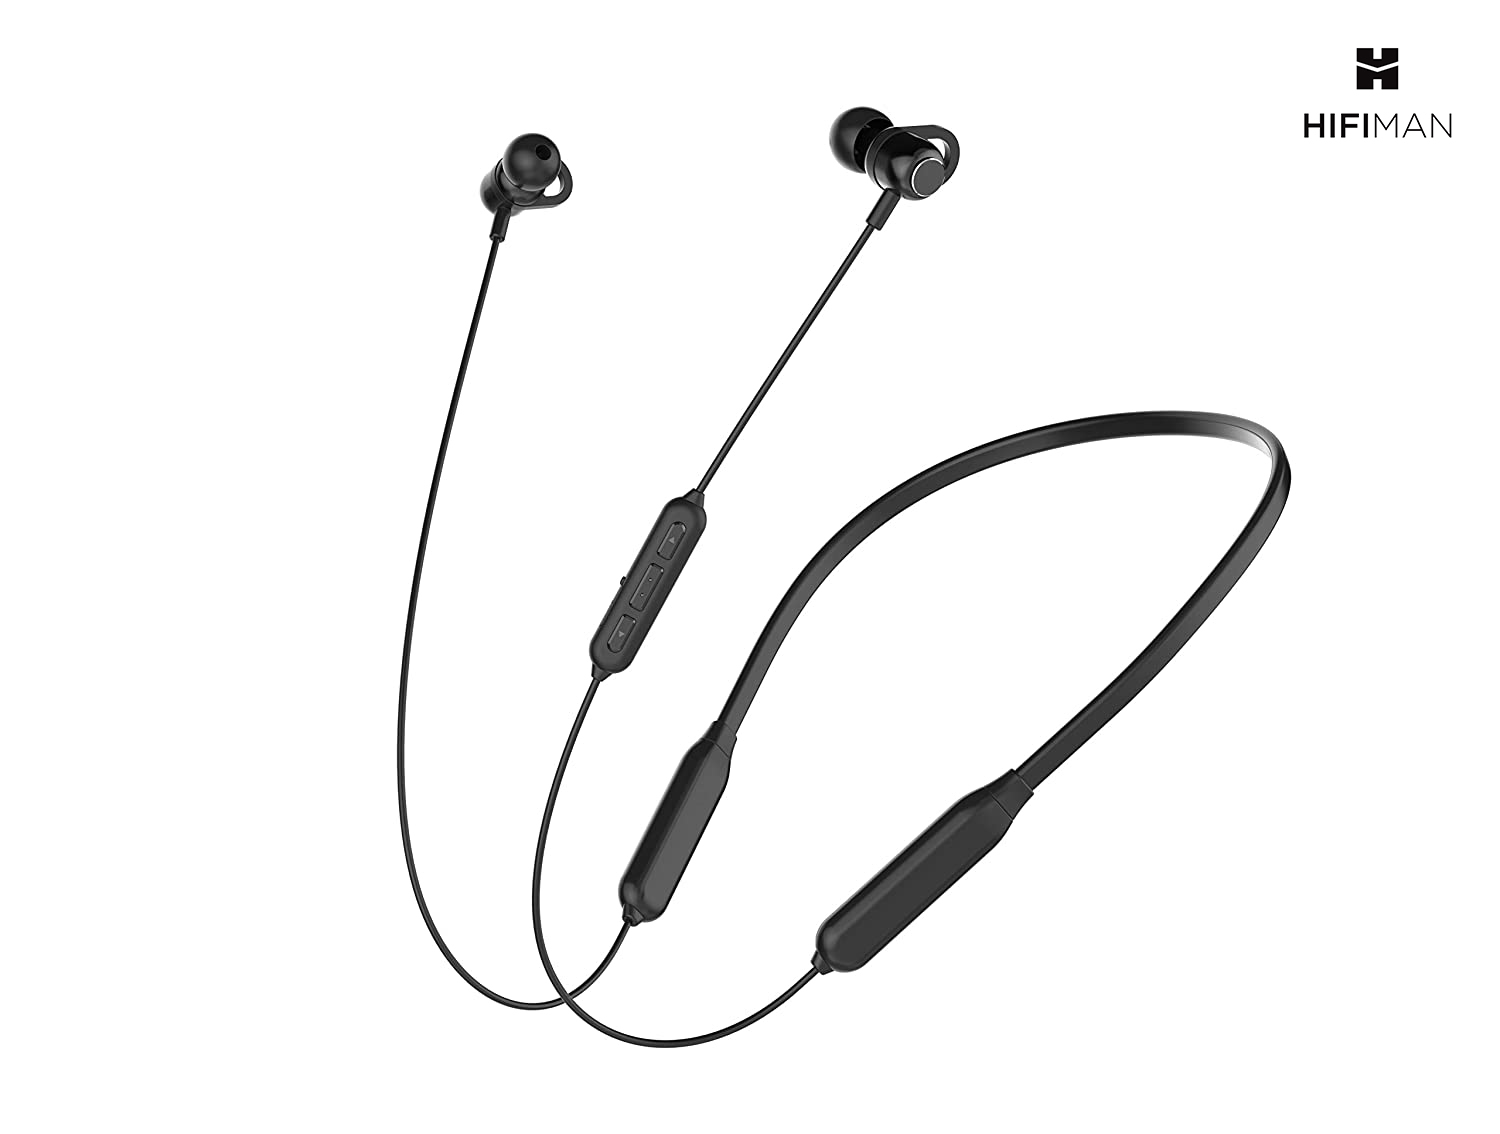 Hifiman BW400 neckband with extreme bass, 12-hour battery life launched in India at Rs 2,799